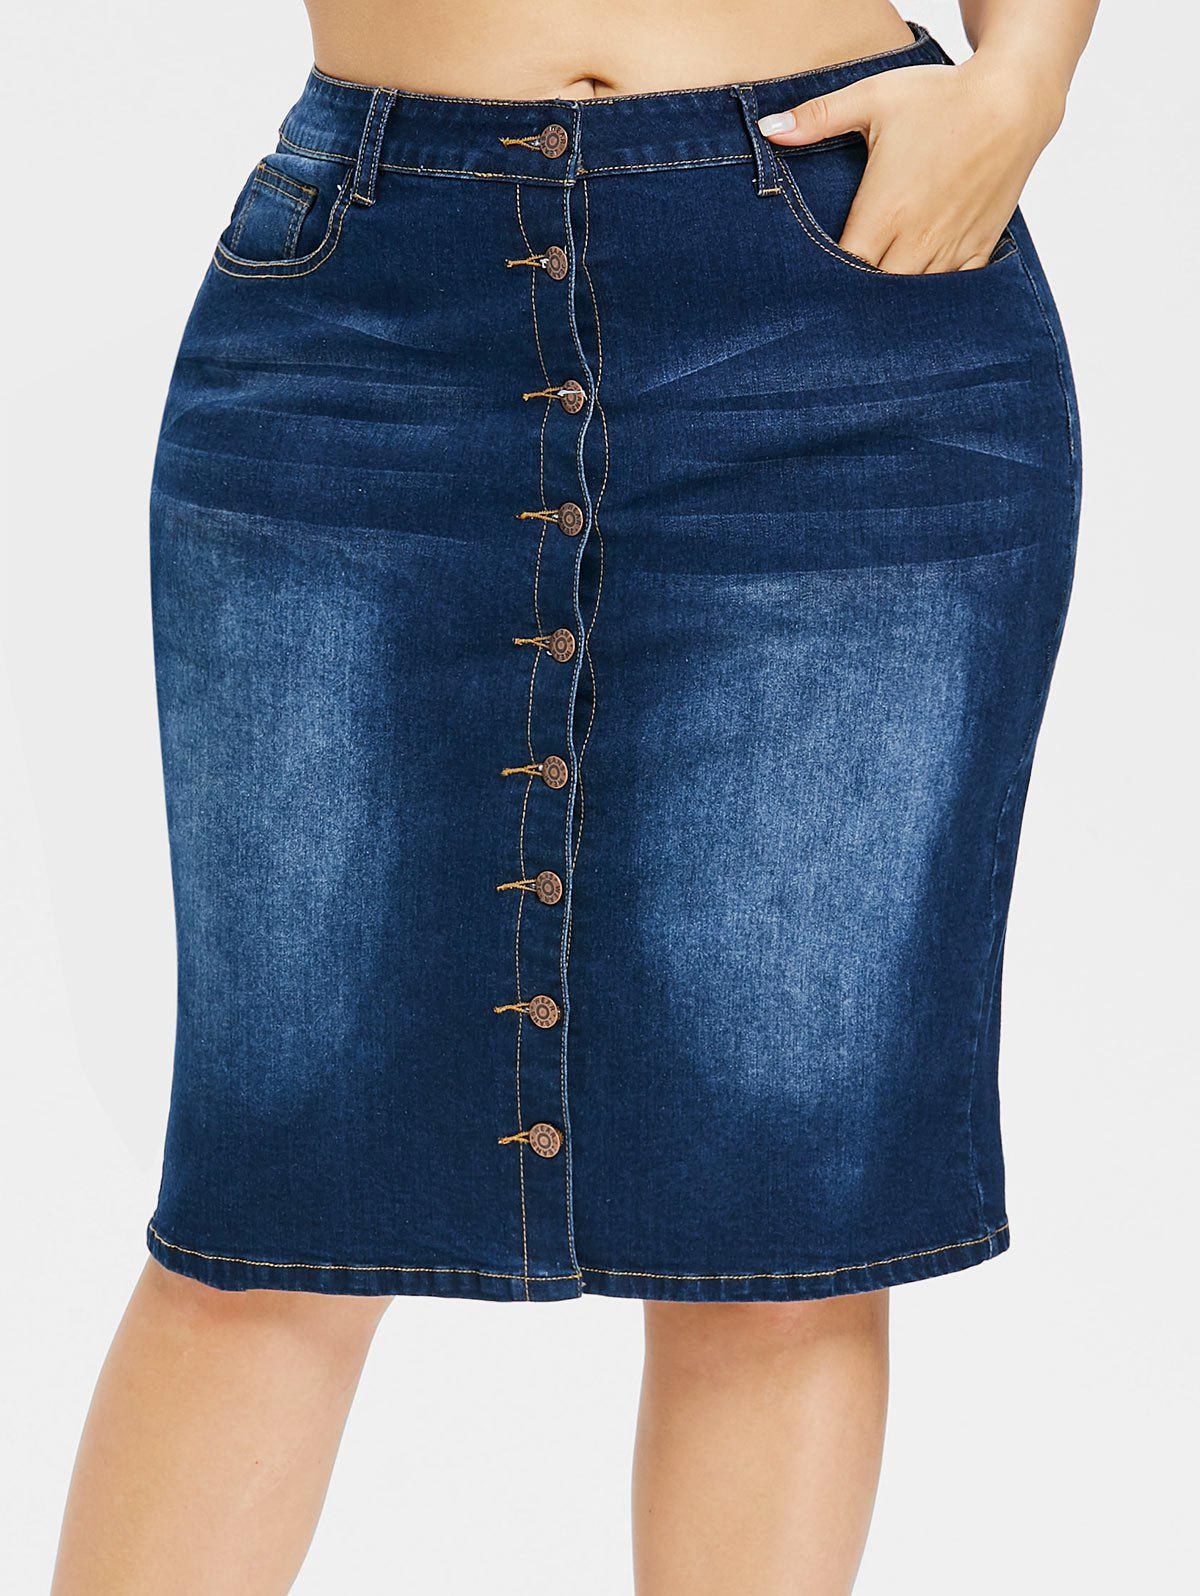 Plus Size Button Up Knee Length Denim Skirt - DEEP BLUE 1X